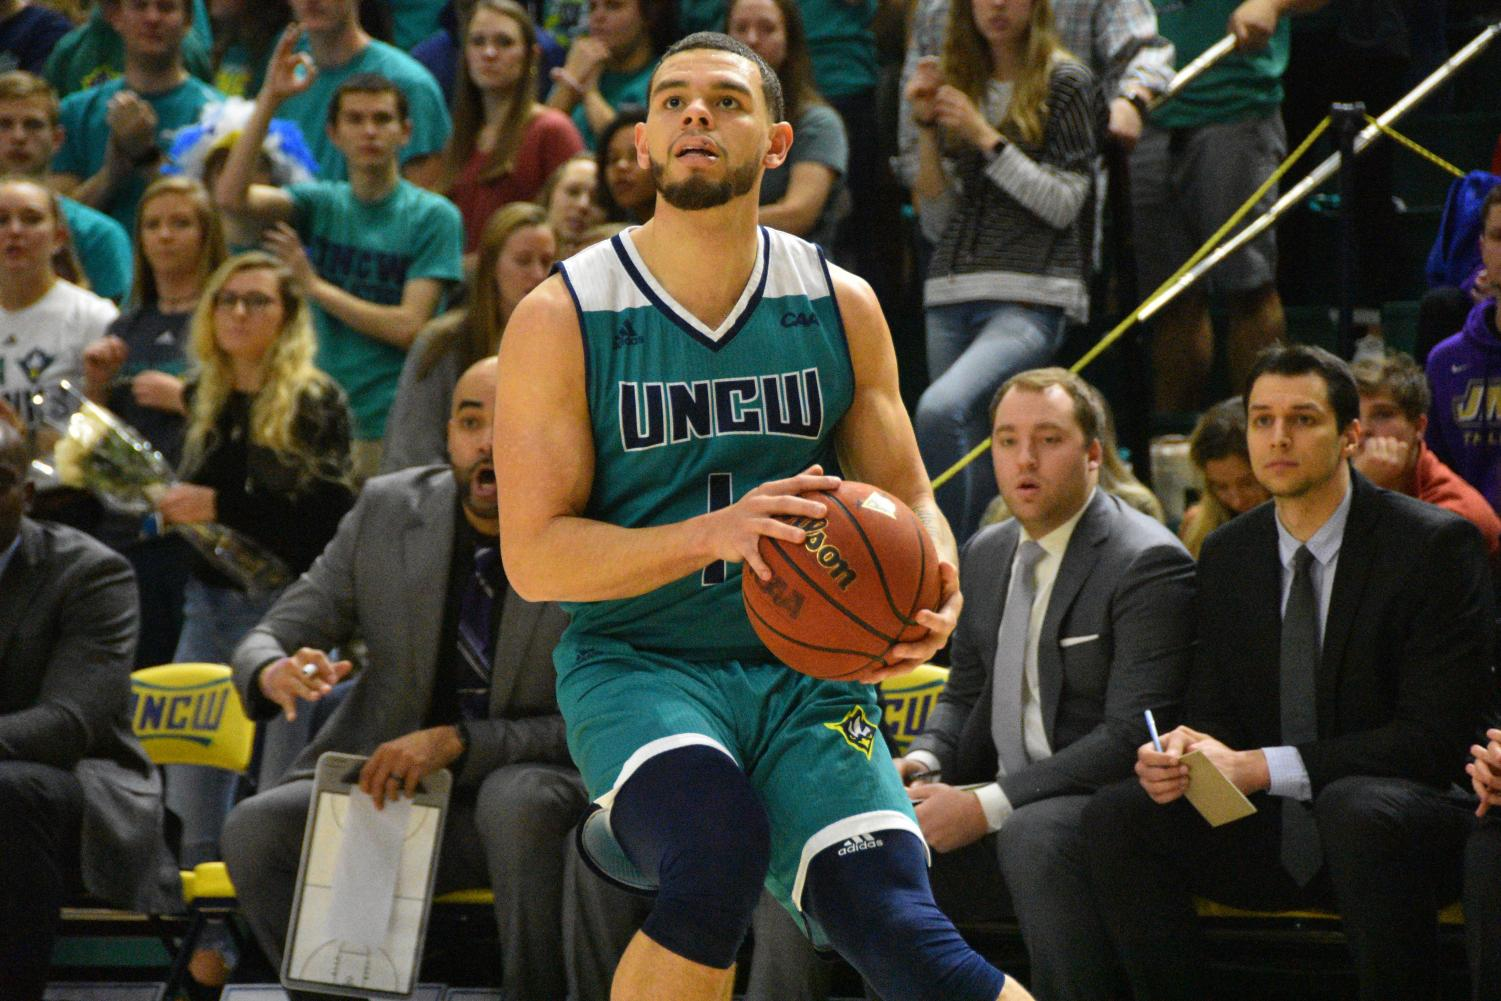 Jaylen Fornes (1) pulls up for a three-pointer during UNCW's Homecoming matchup against James Madison on Feb. 2, 2019.